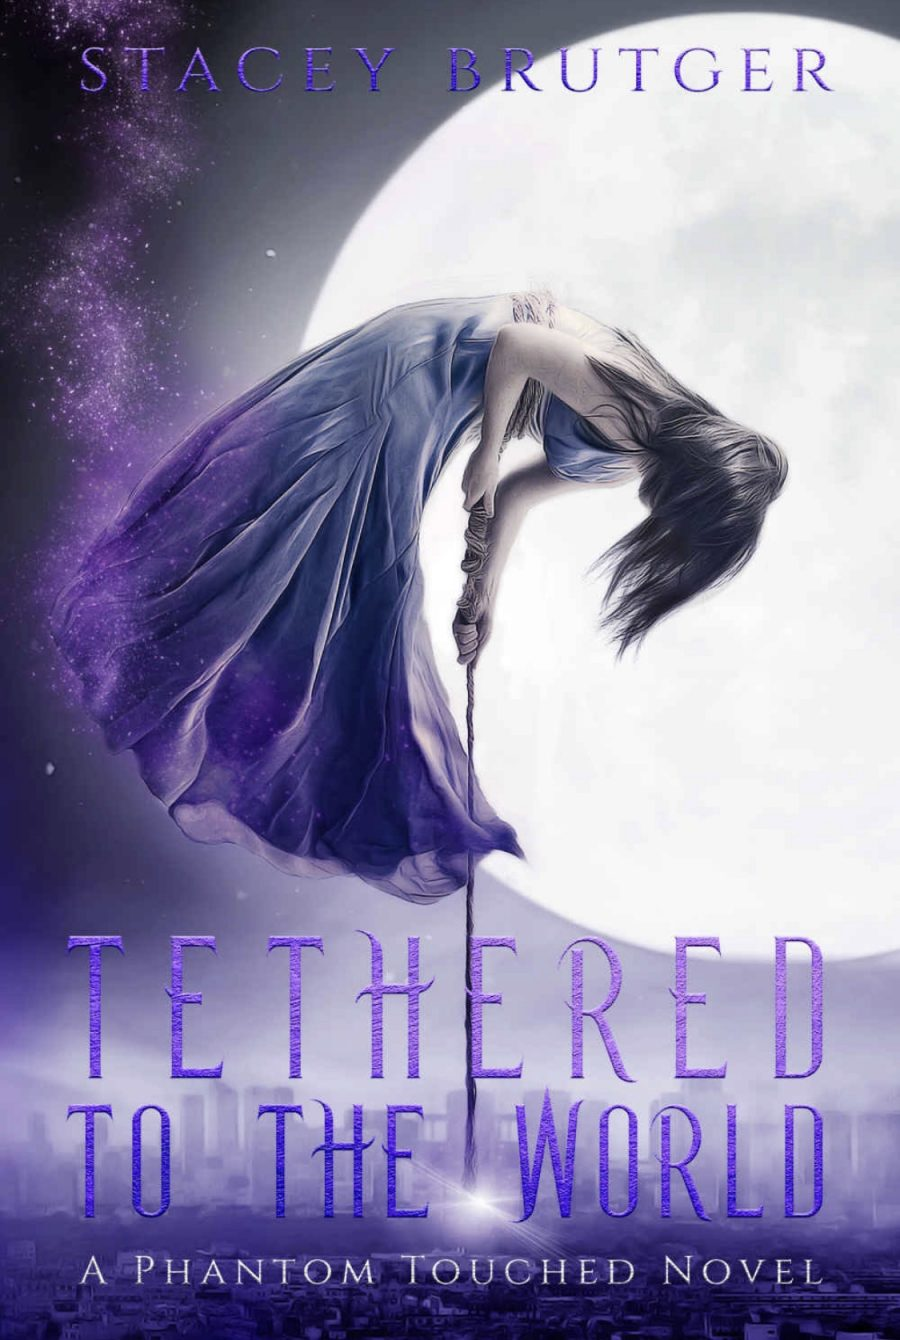 Tethered to The World by Stacey Brutger - A Book Review #BookReview #Review #PNR #SlowBurn #ReverseHarem #RH #WhyChoose #Paranormal #Romance #KU